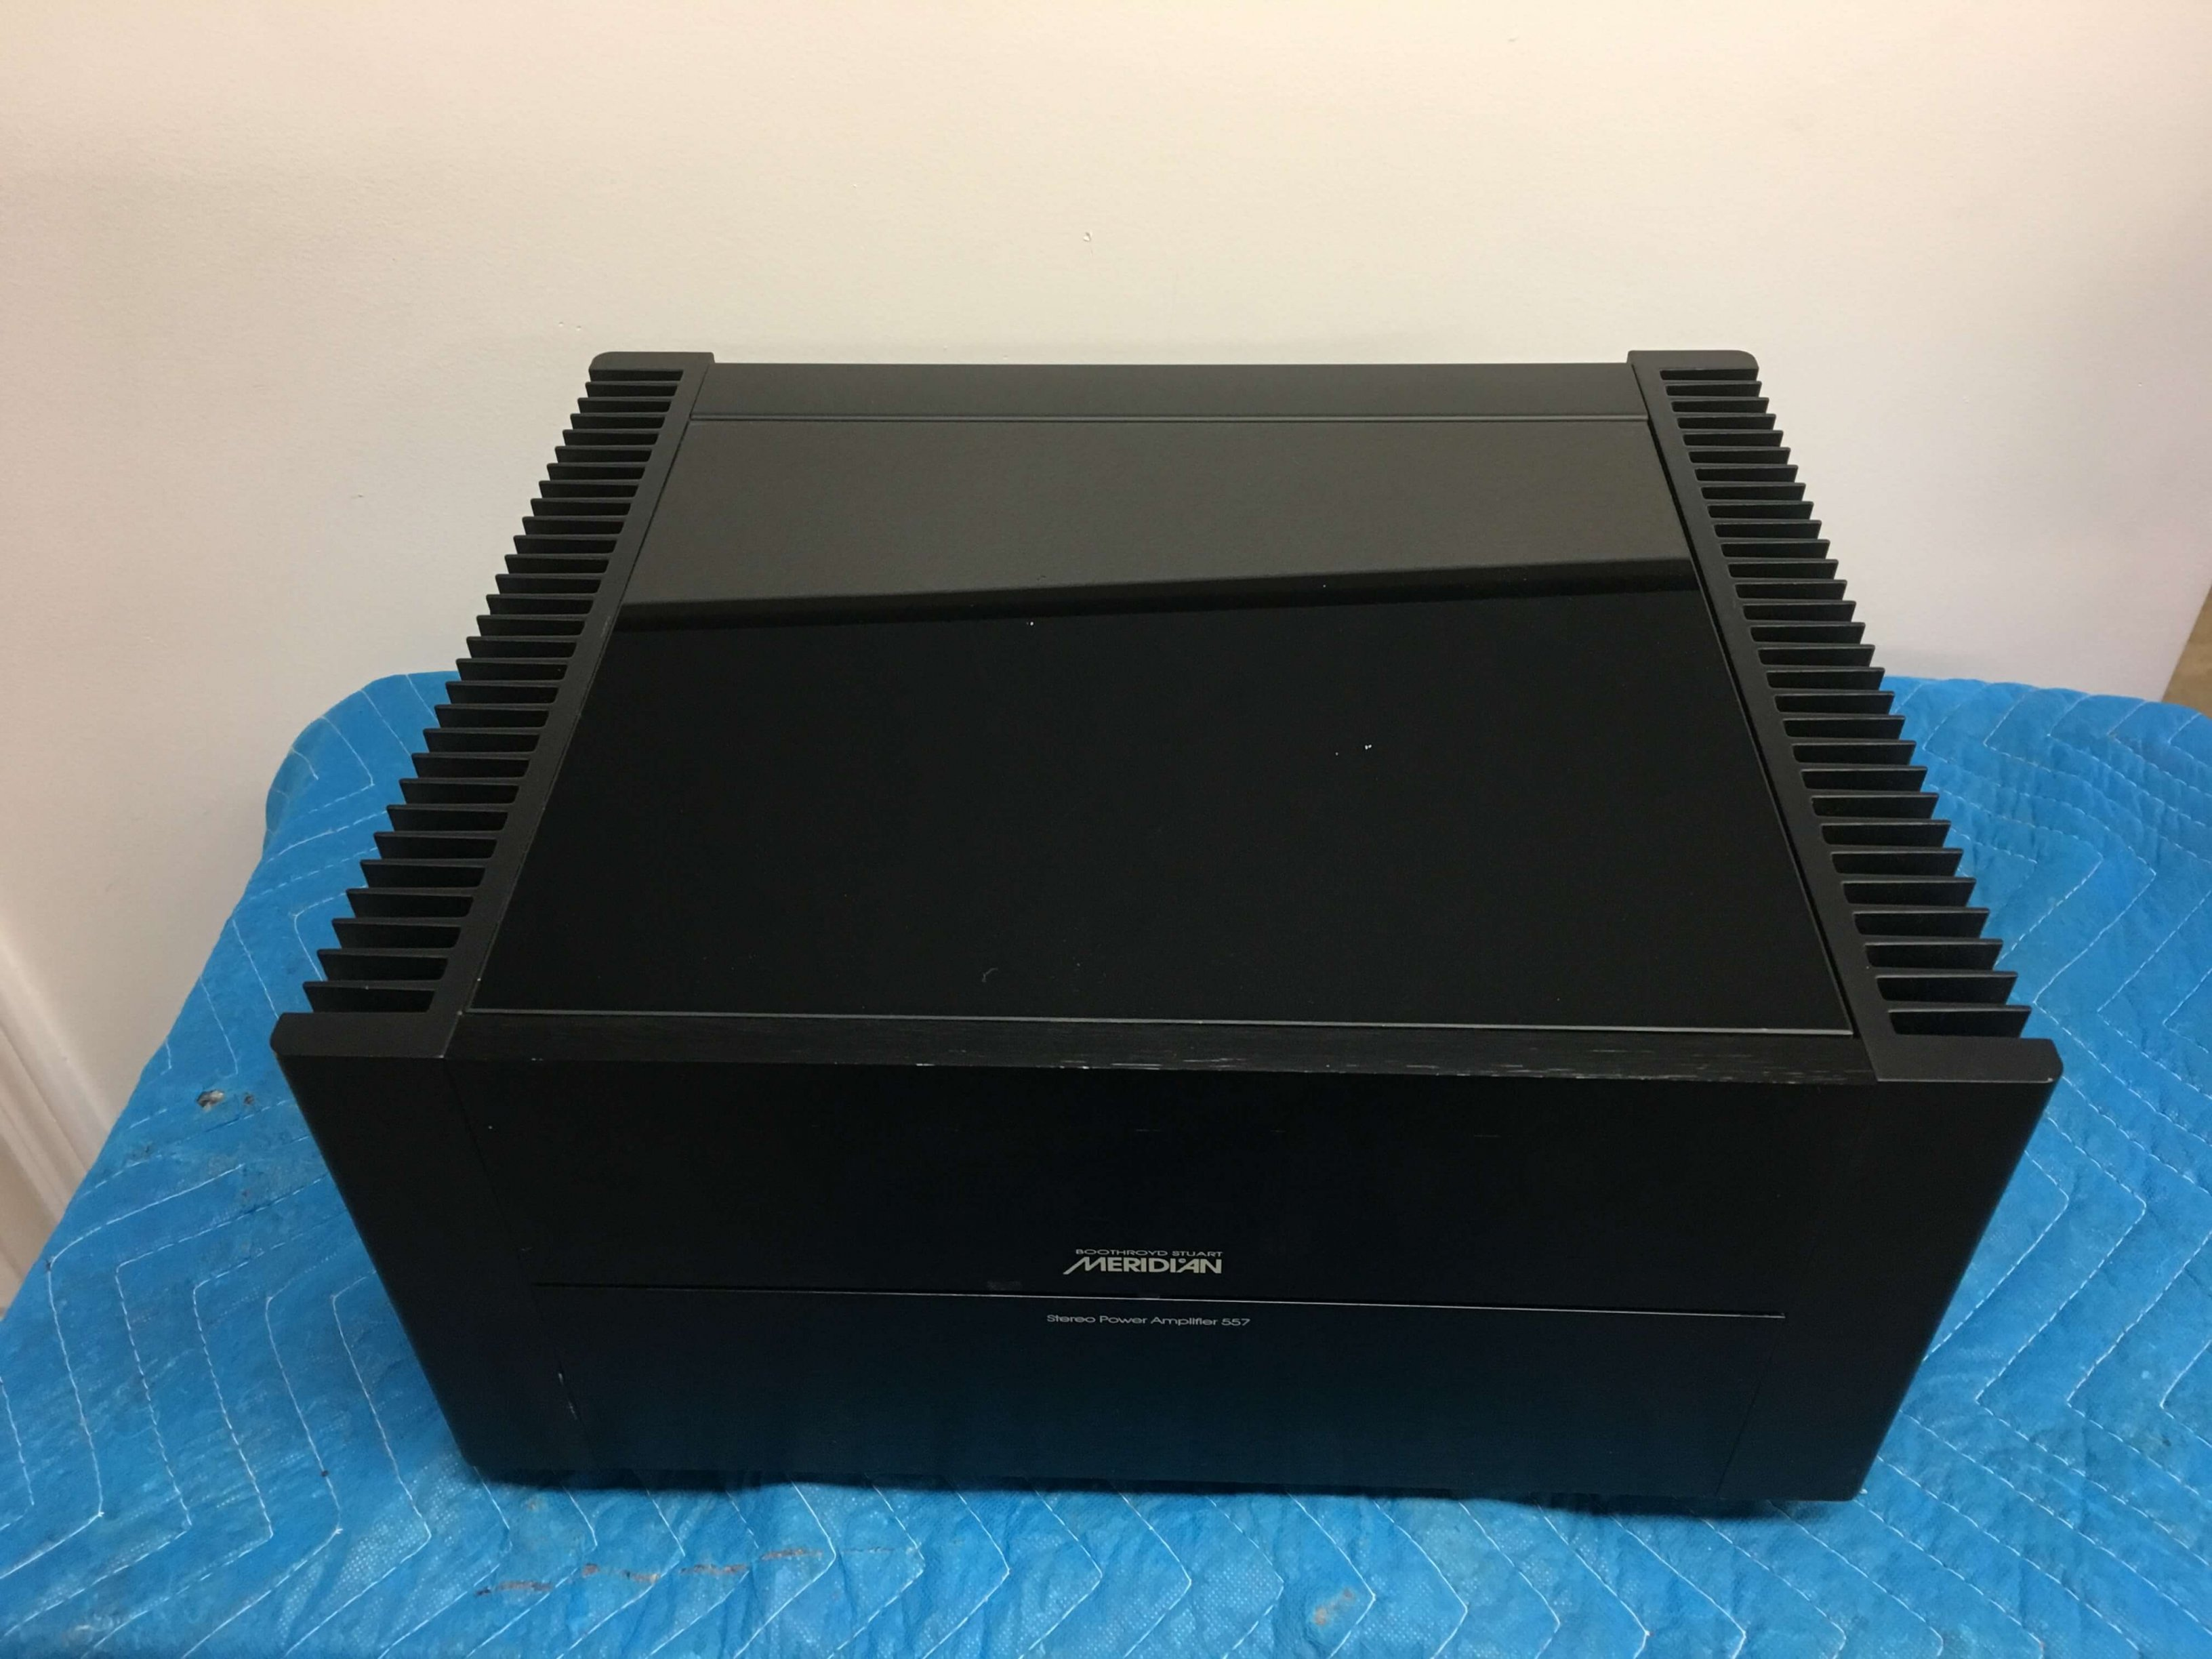 Meridian 557 stereo power amplifier